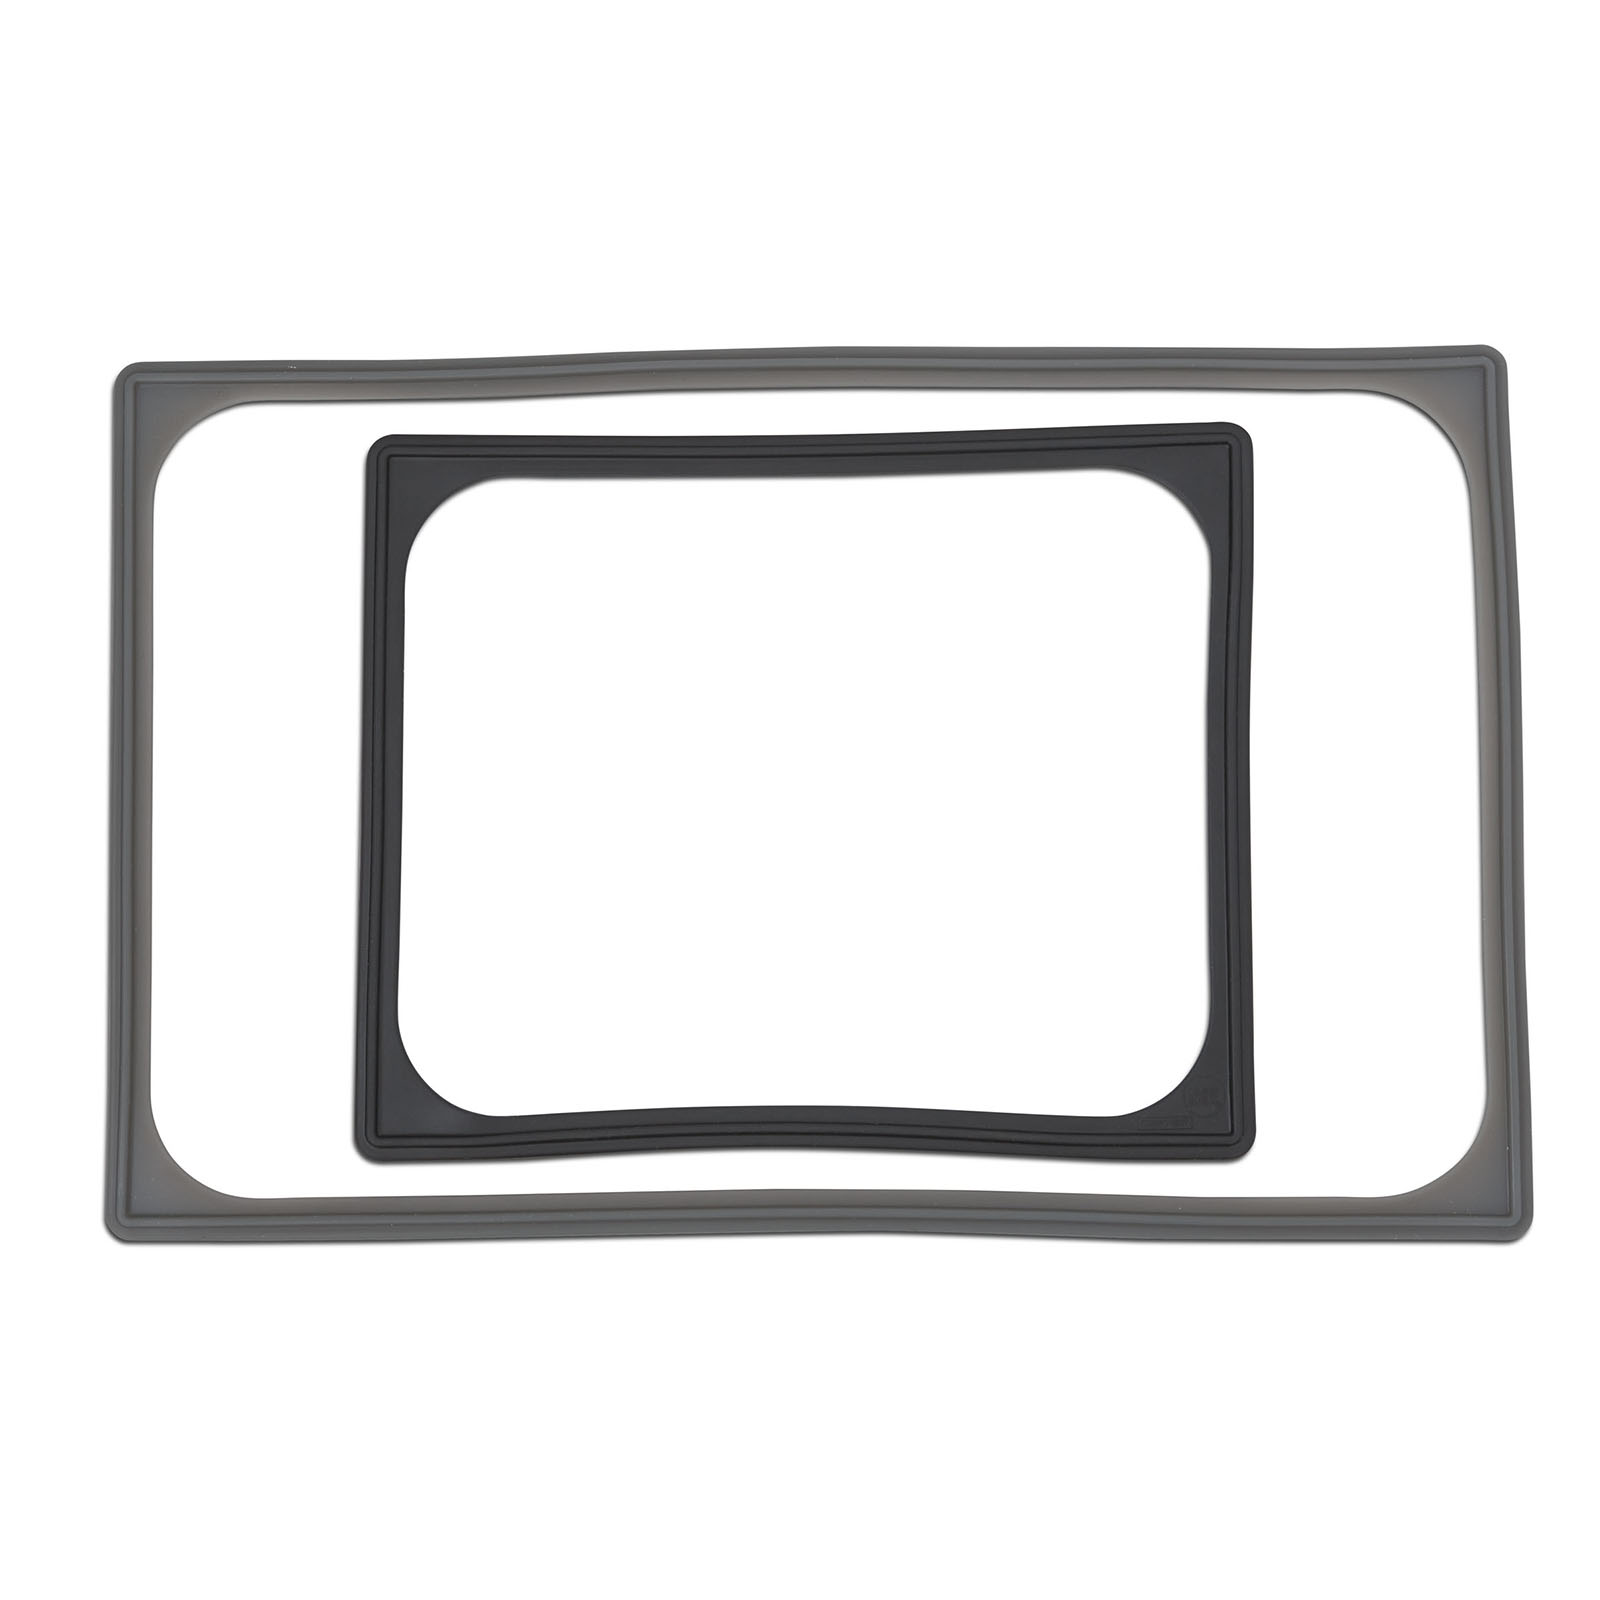 N-0002G Vollrath - High-Temp Silicone Pan Band for Half Size Steam Table - Gray